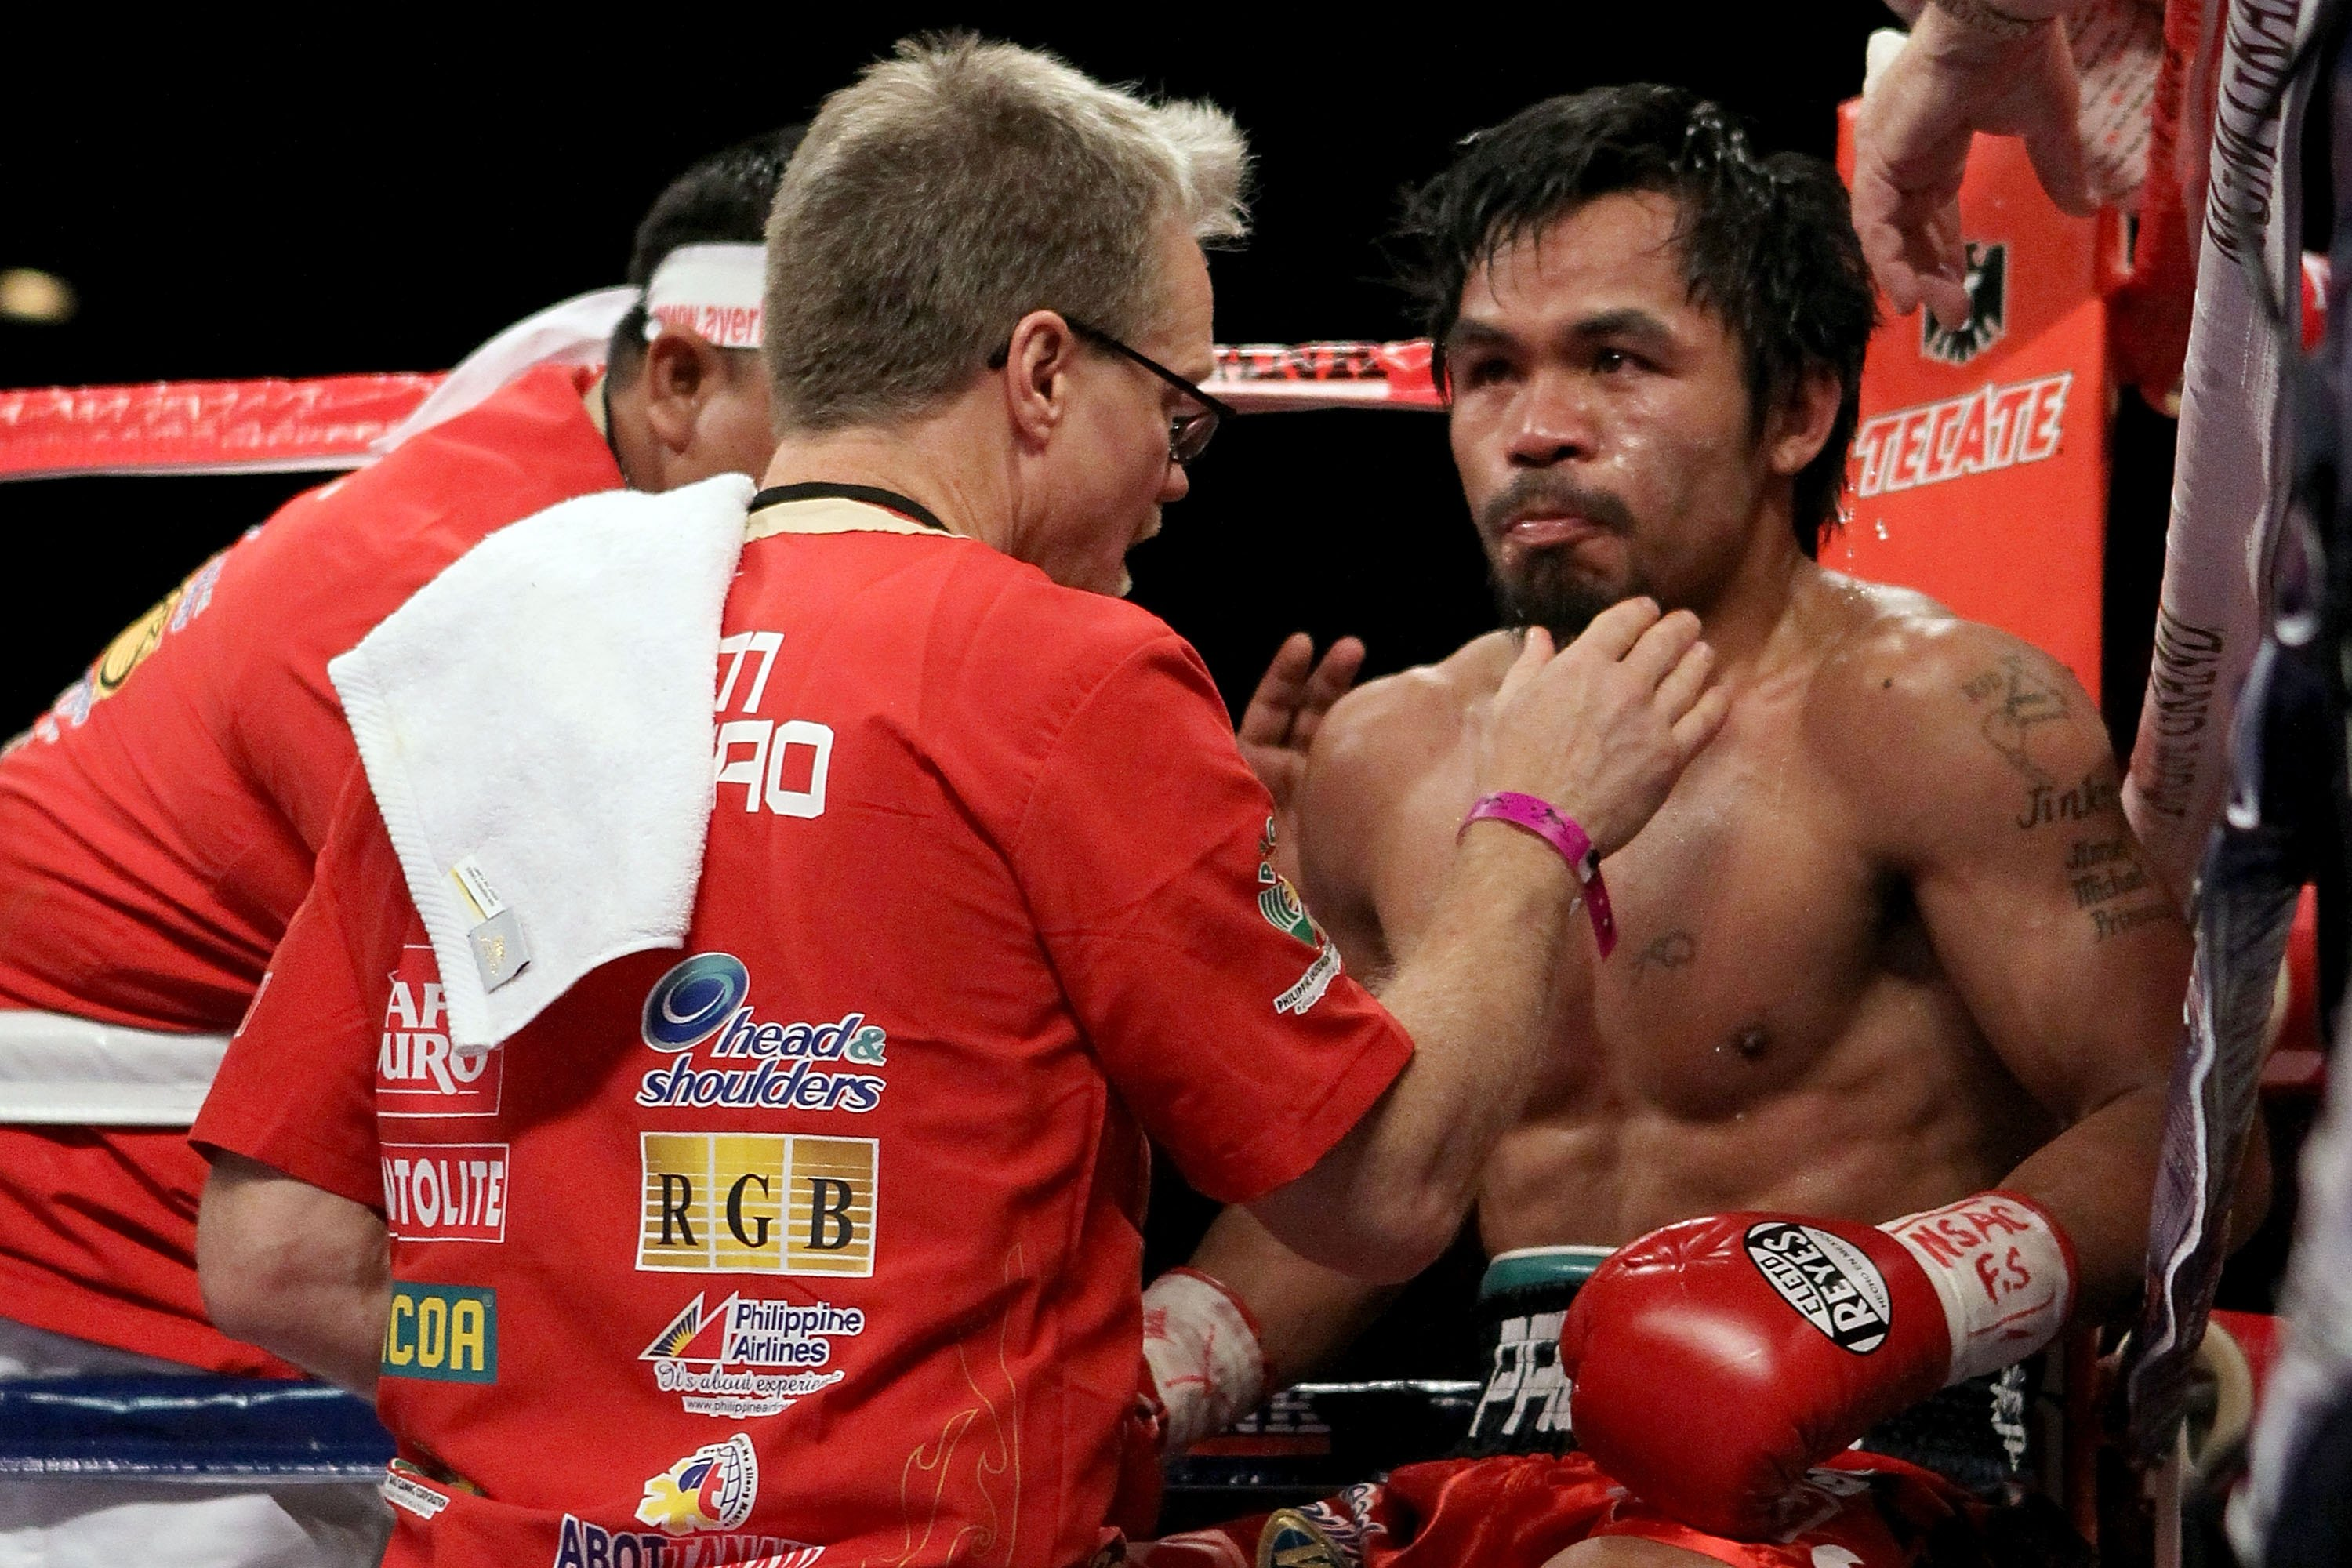 LAS VEGAS - NOVEMBER 14:  Manny Pacquiao sits in his corner between rounds with trainer Freddie Roach against Miguel Cotto during their WBO welterweight title fight at the MGM Grand Garden Arena on November 14, 2009 in Las Vegas, Nevada.  (Photo by Al Bel